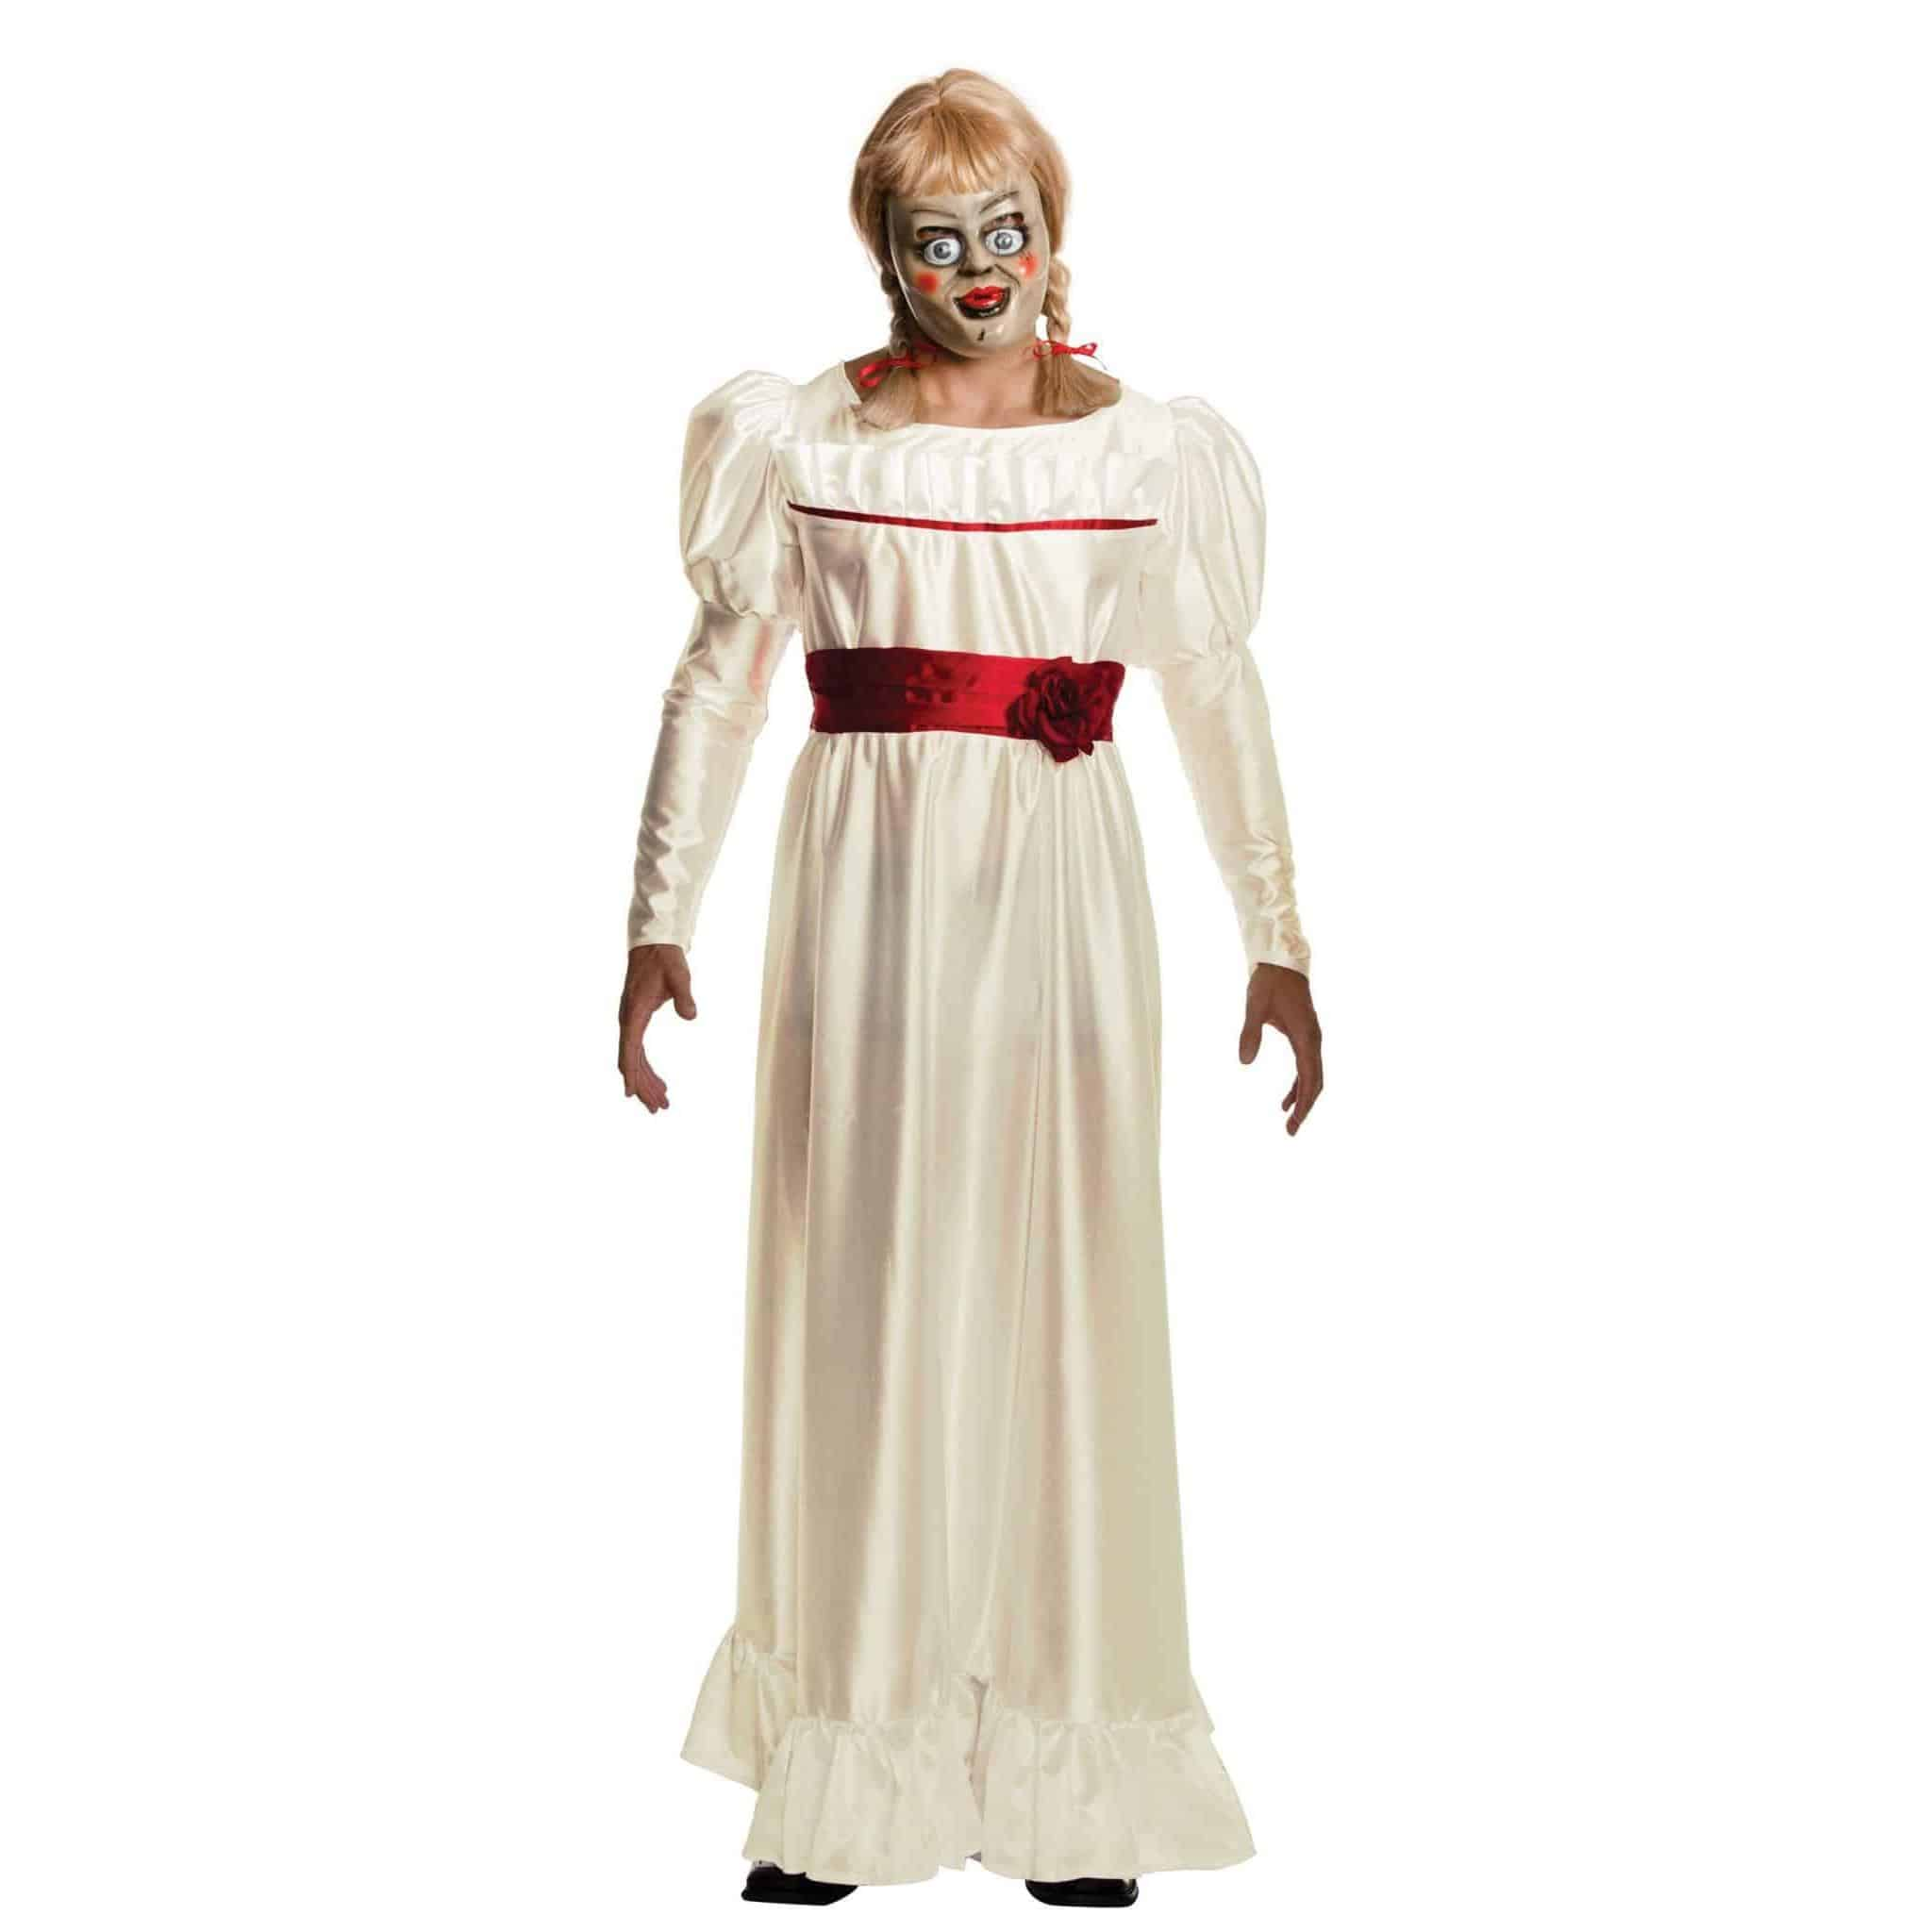 Annabelle Costumes For Halloween, The Conjuring Doll